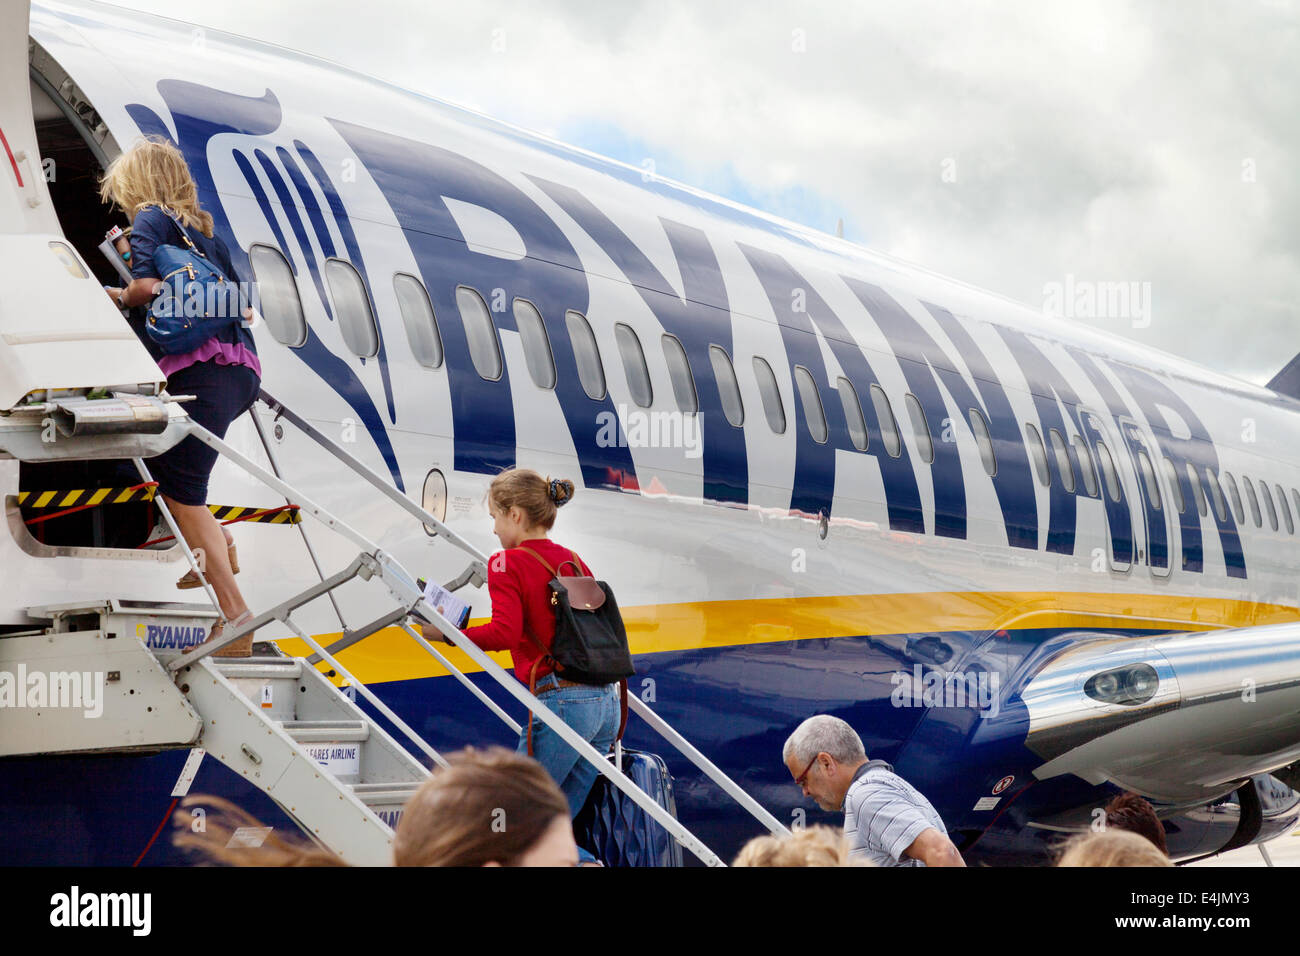 Passengers boarding a Ryanair plane at Stansted airport, London UK Stock Photo